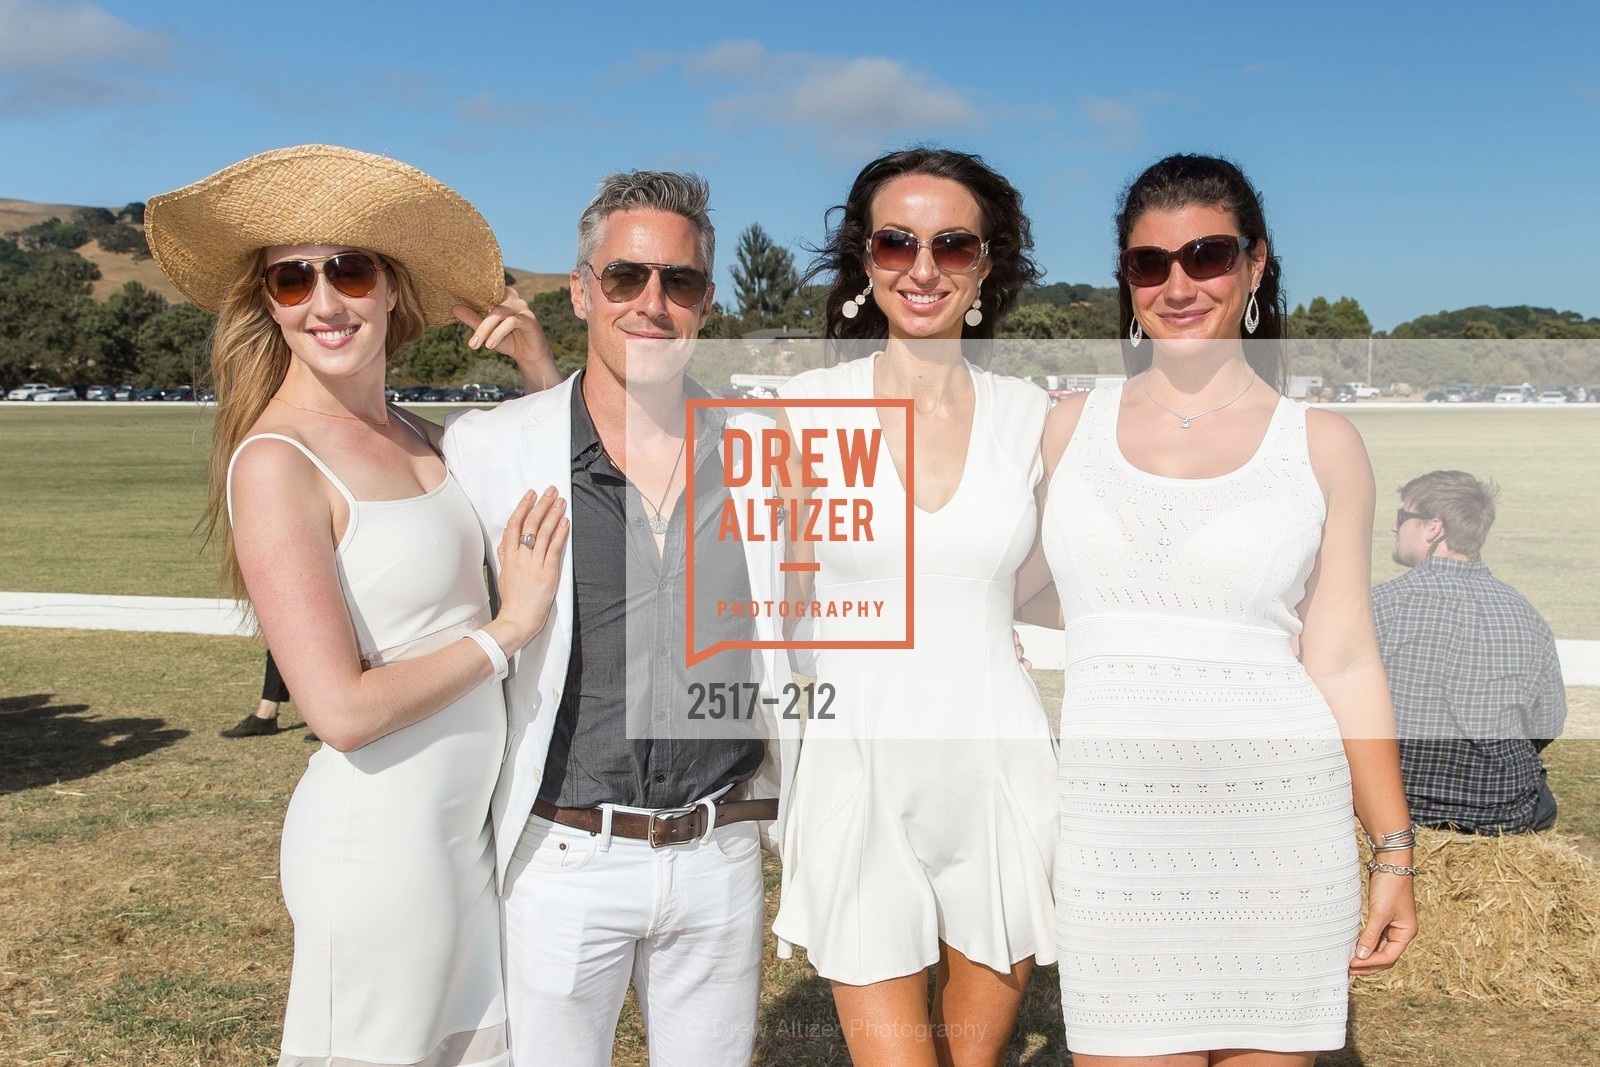 Alison Dibella, Eoin Harrington, Lisa Faer, Beth Whaley, Stick & Ball Oyster Cup Polo Tournament, Cerro Pampa Polo Club, July 25th, 2015,Drew Altizer, Drew Altizer Photography, full-service agency, private events, San Francisco photographer, photographer california